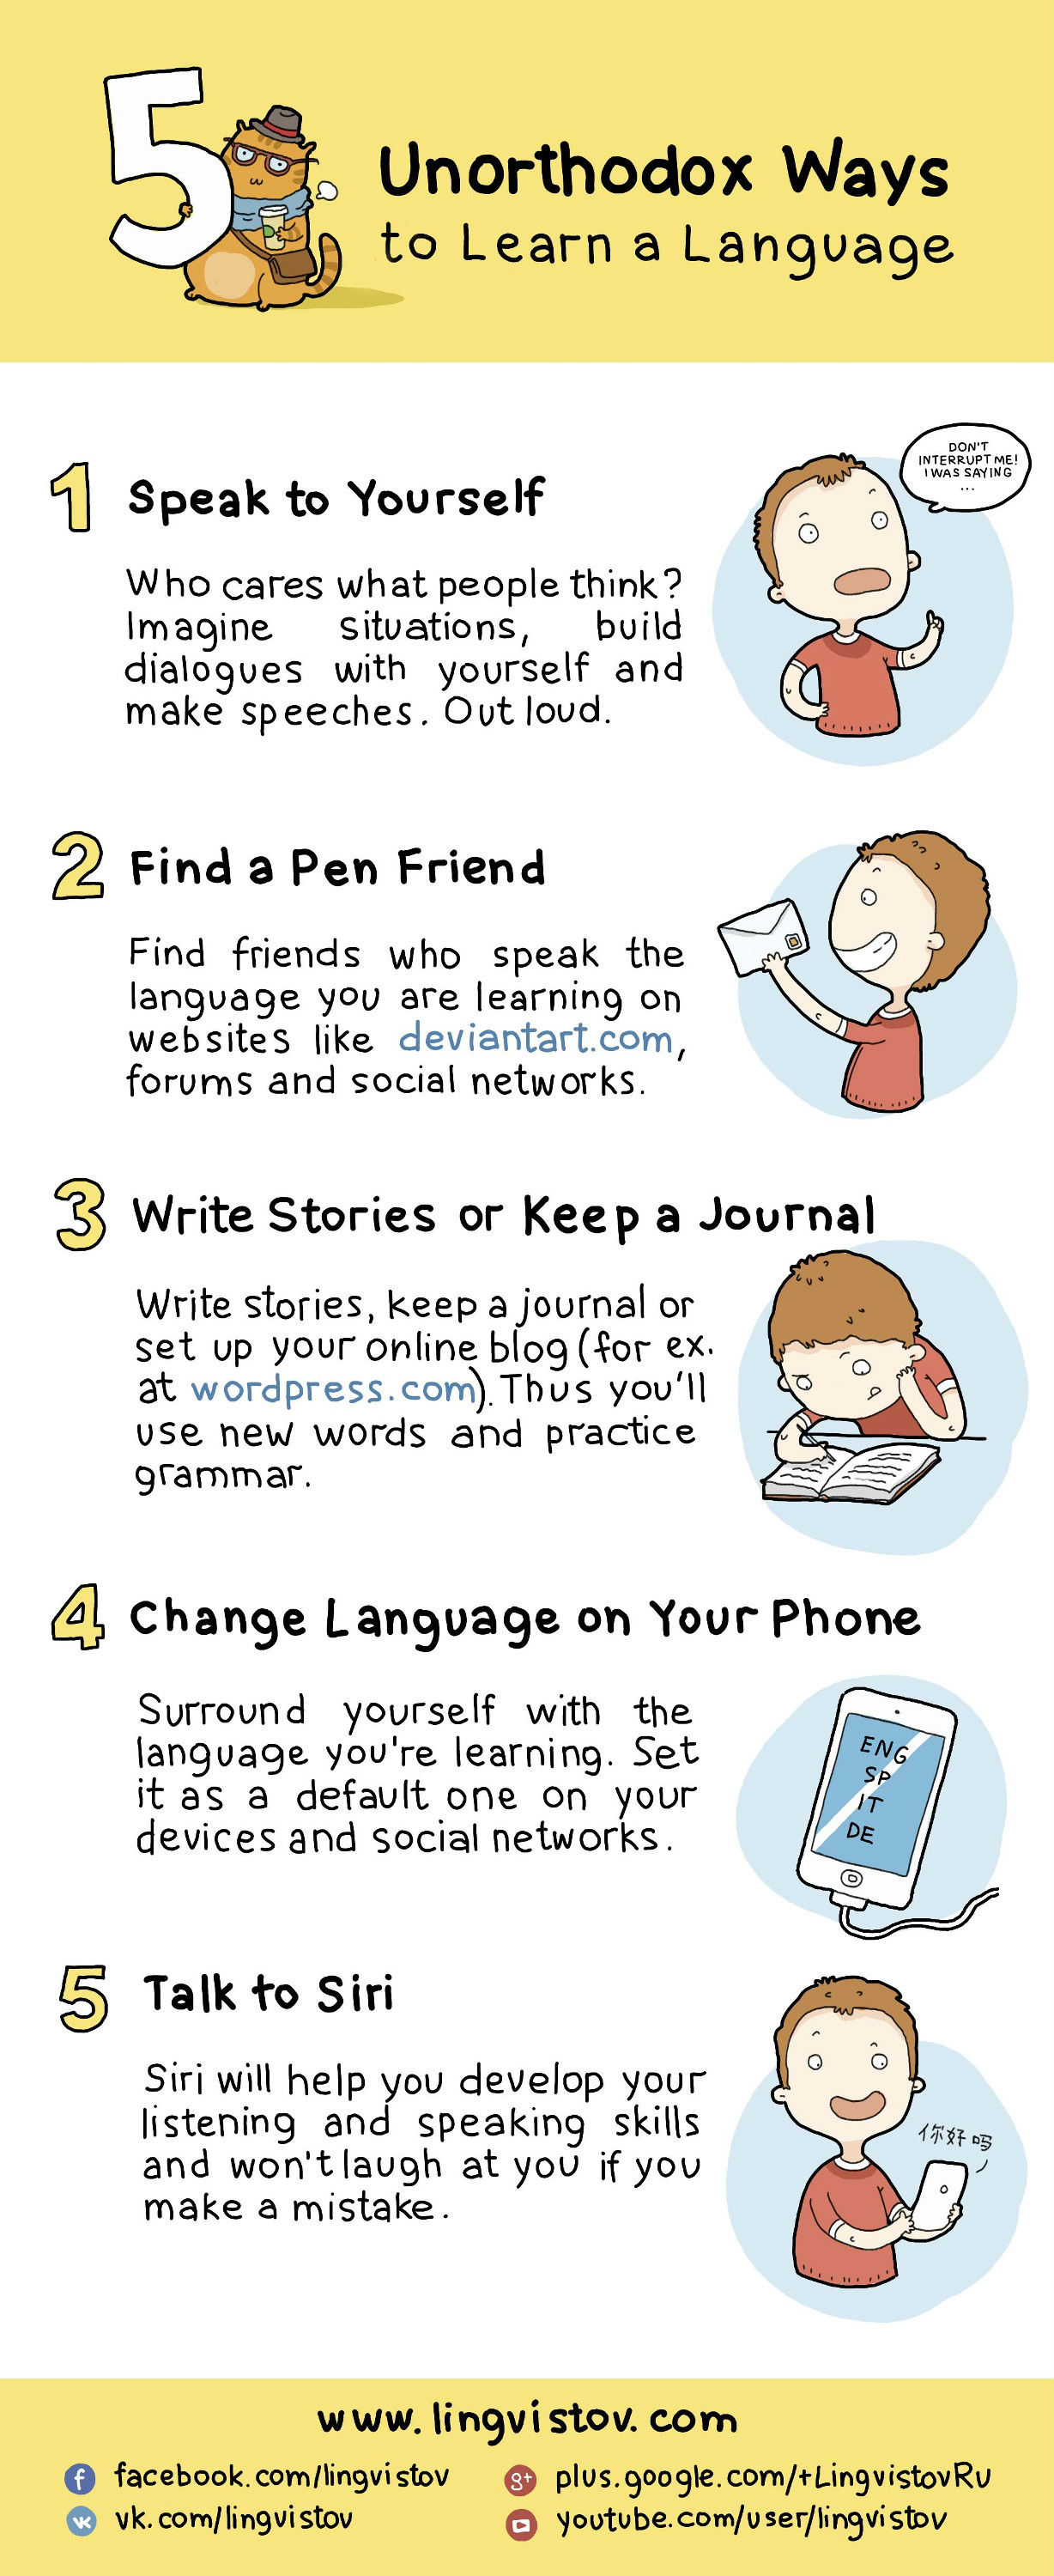 5 Unorthodox Ways To Learn a Language [Infographic]